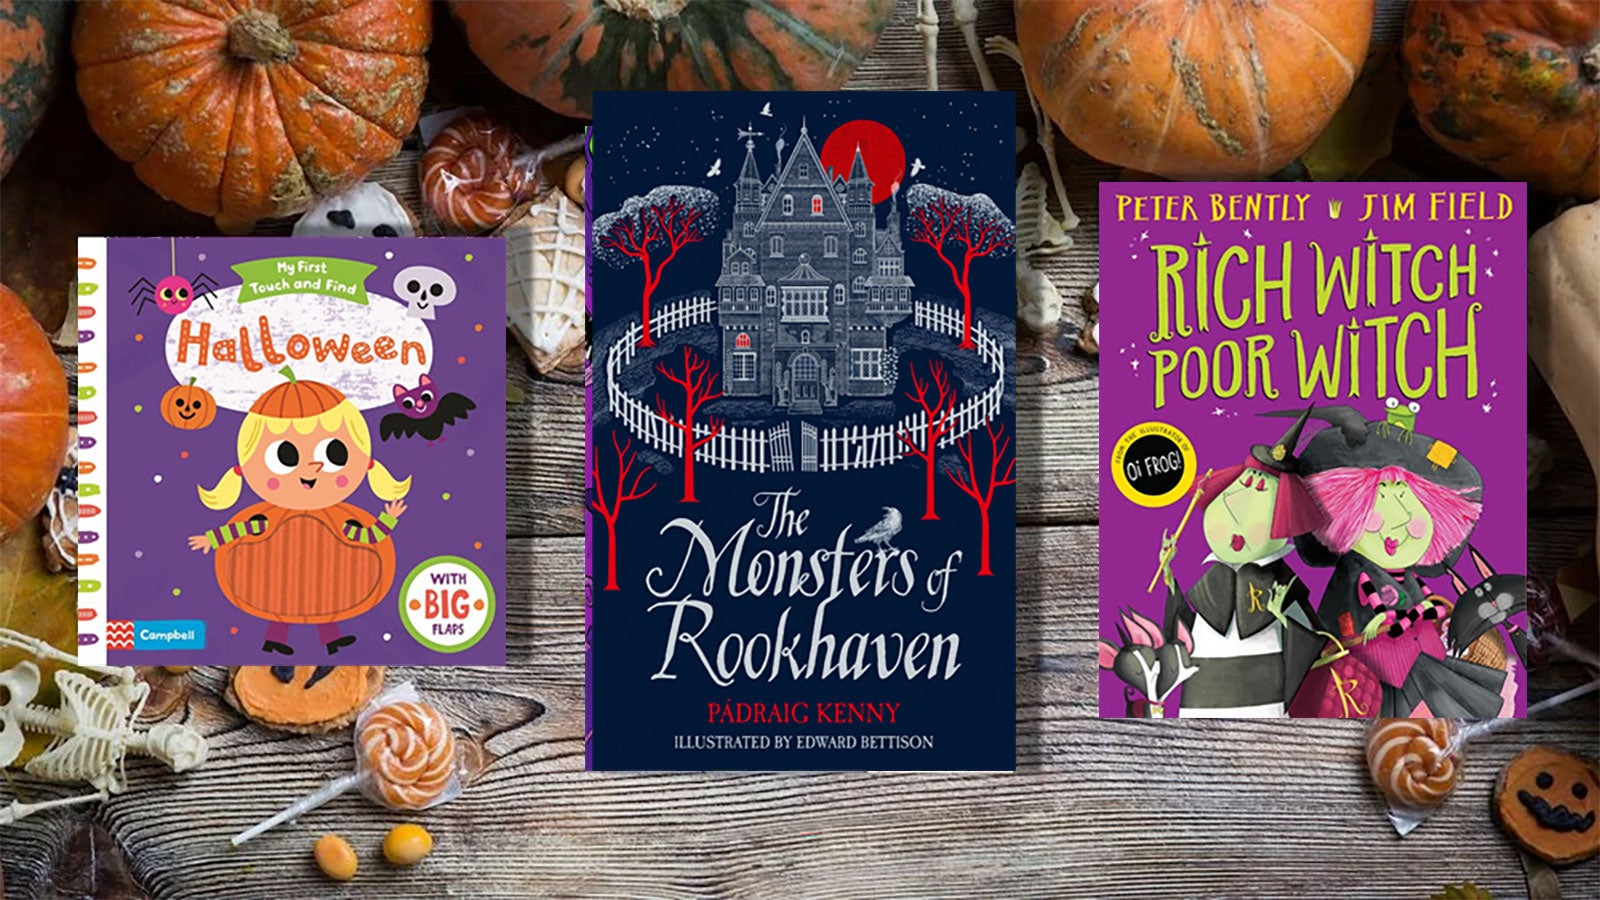 Halloween, The Monsters of Rookhaven and Rich Witch, Poor Witch against a background of pumpkins and sweets